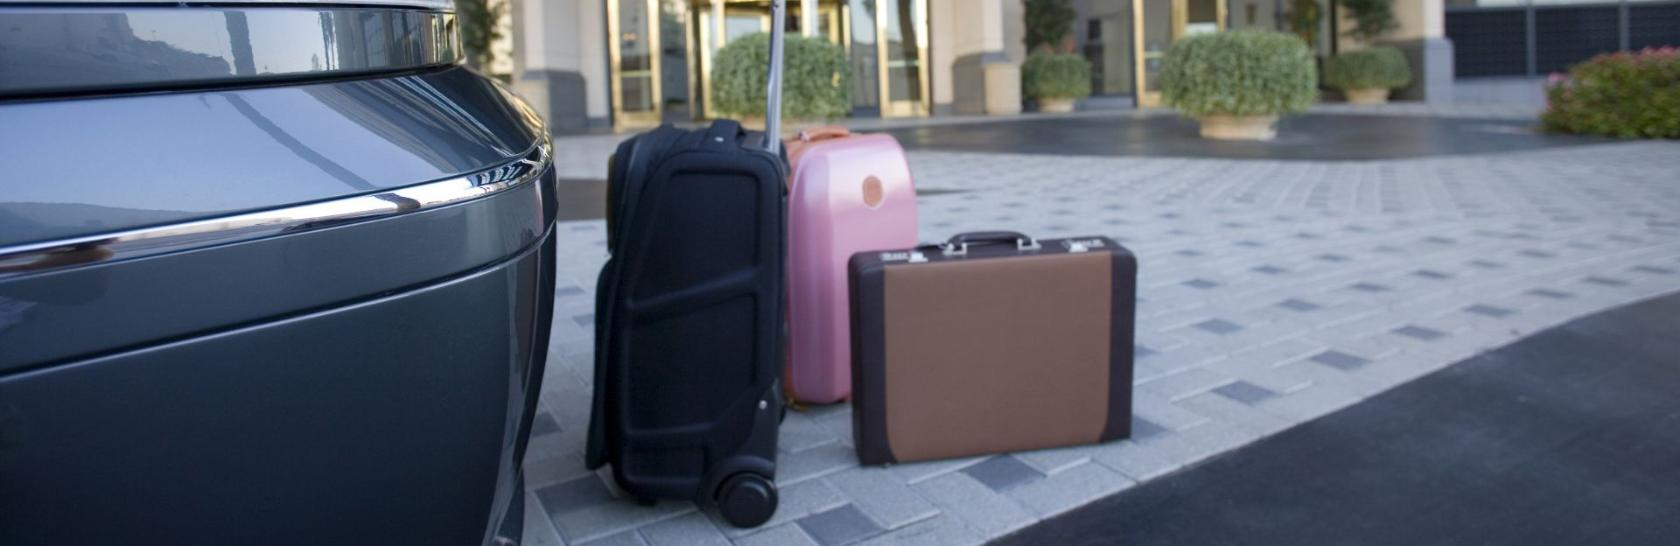 Heathrow Hotel & Parking packages